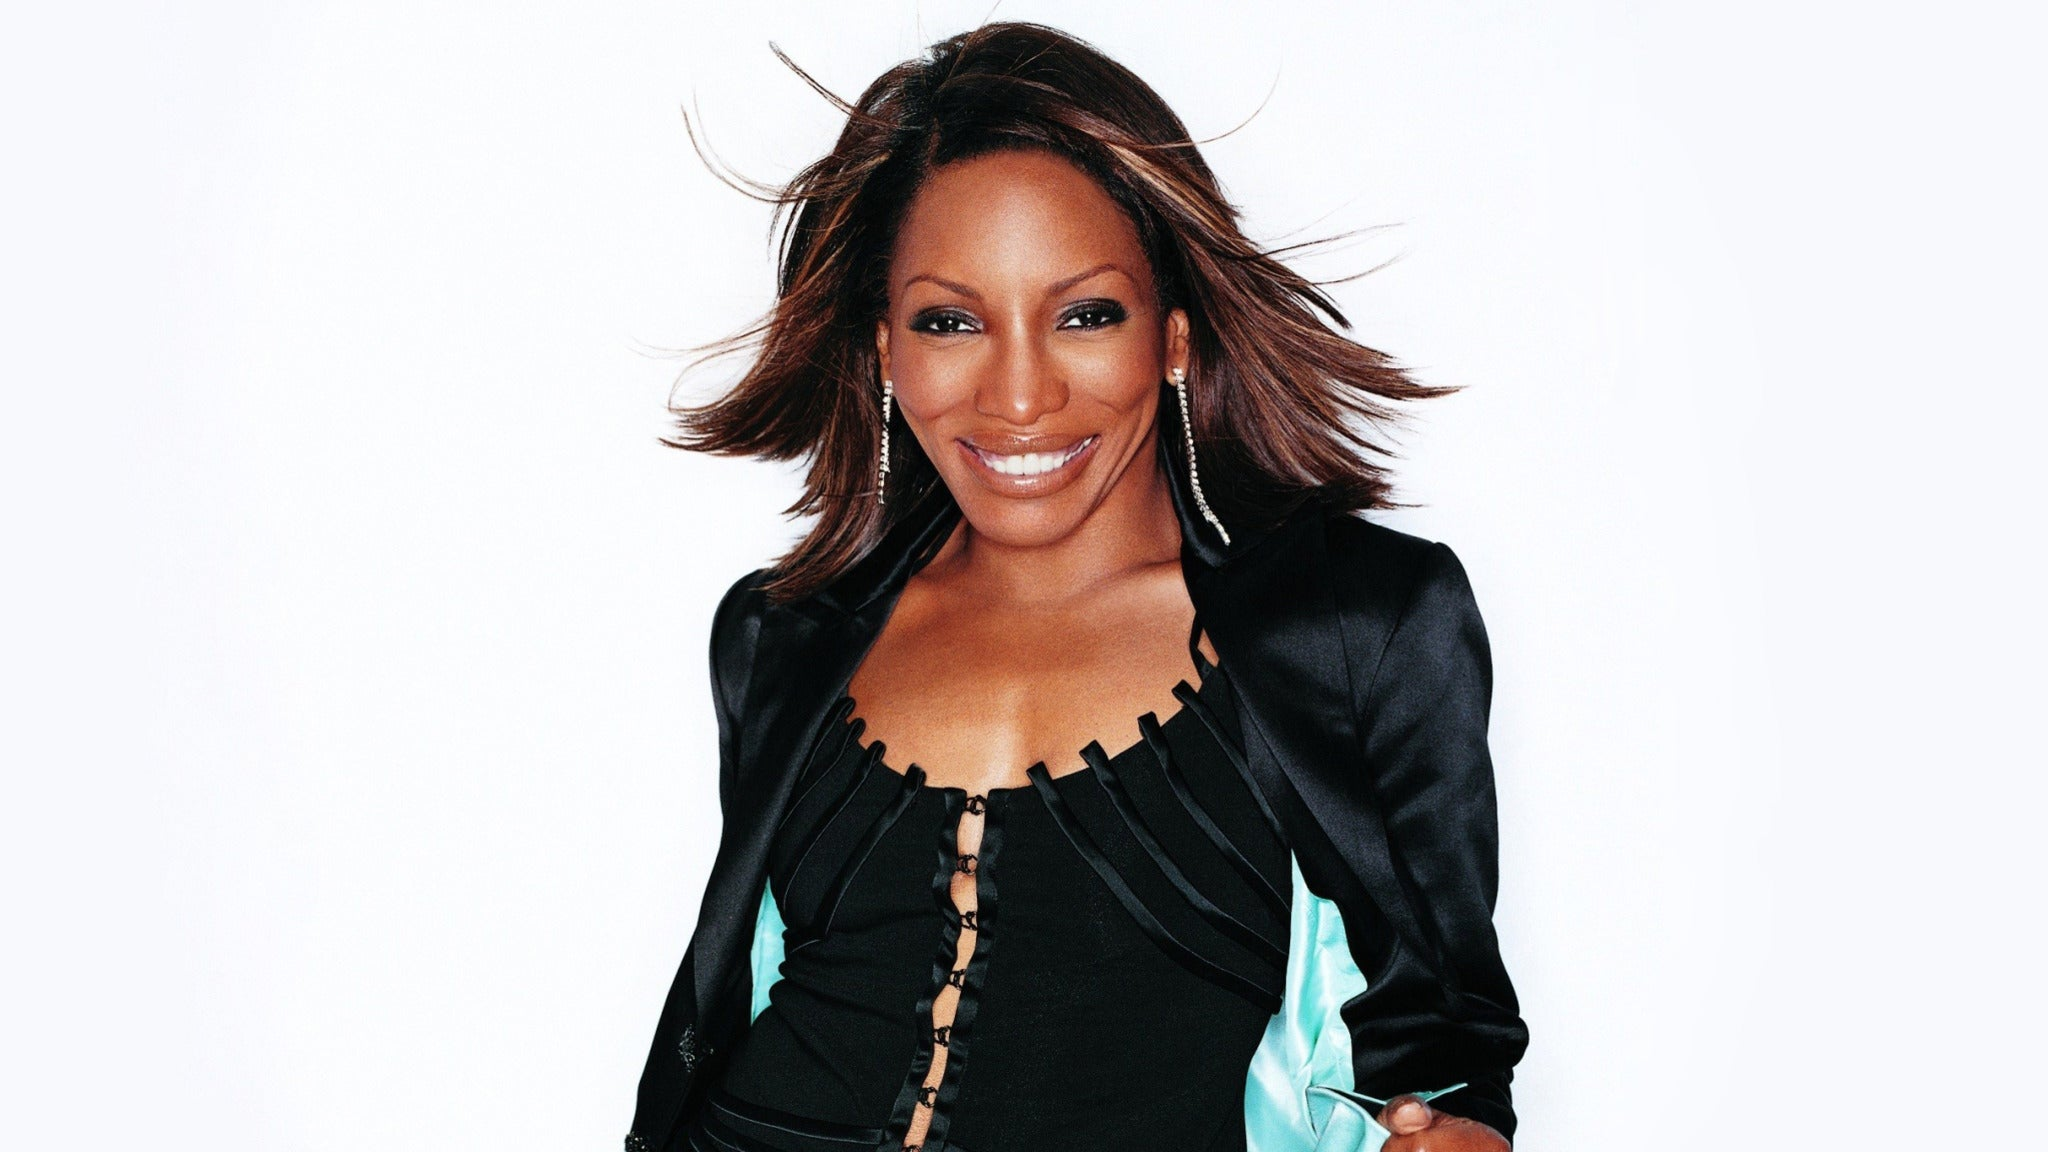 Stephanie Mills at Andiamo Celebrity Showroom - Warren, MI 48092